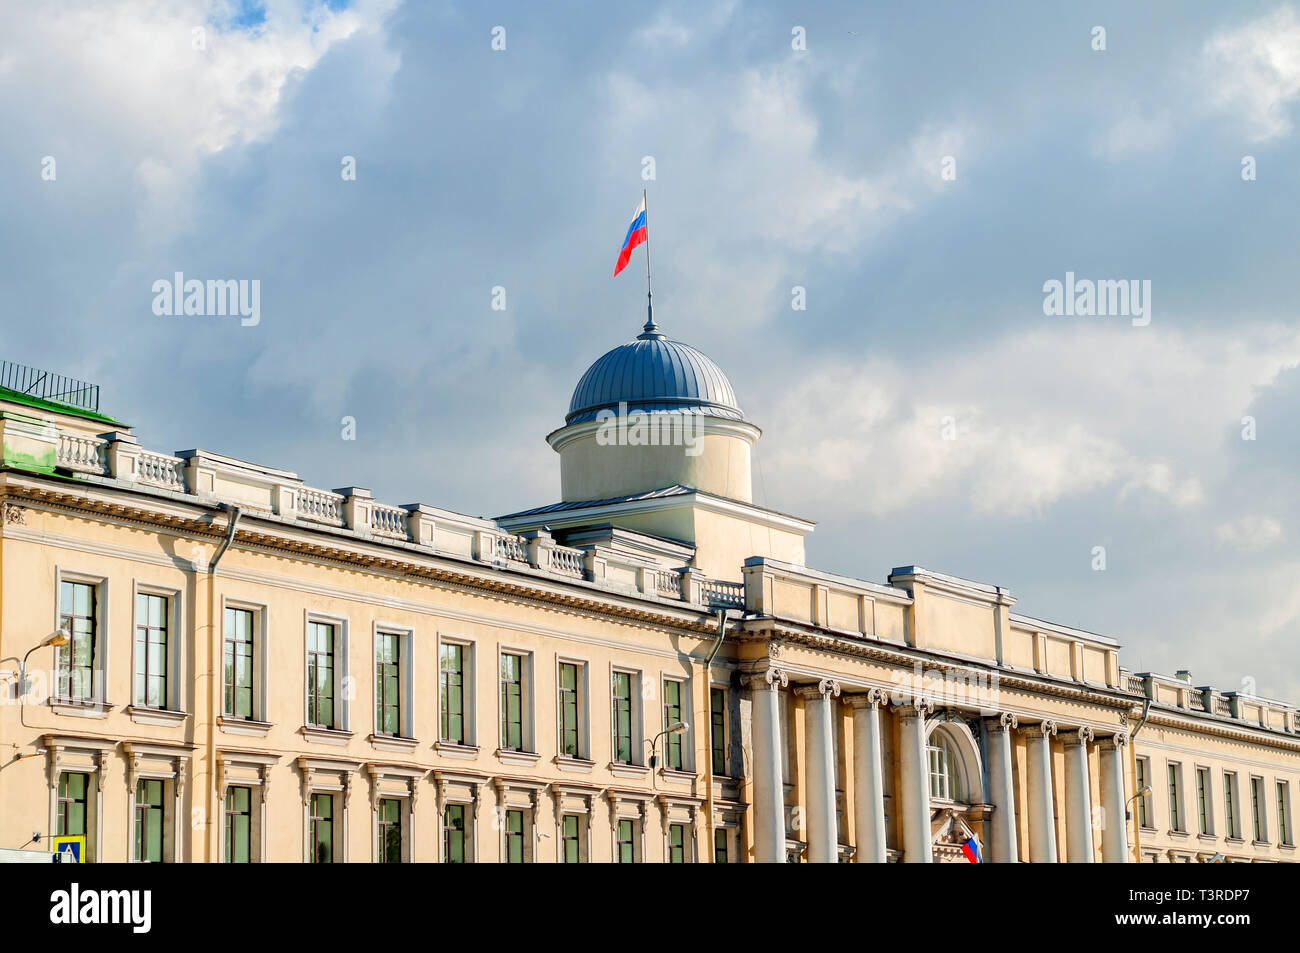 Leningrad Regional Court building on the Fontanka River in Saint Petersburg, Russia - facade view with Russian flag on the roof flagpole in sunny day - Stock Image